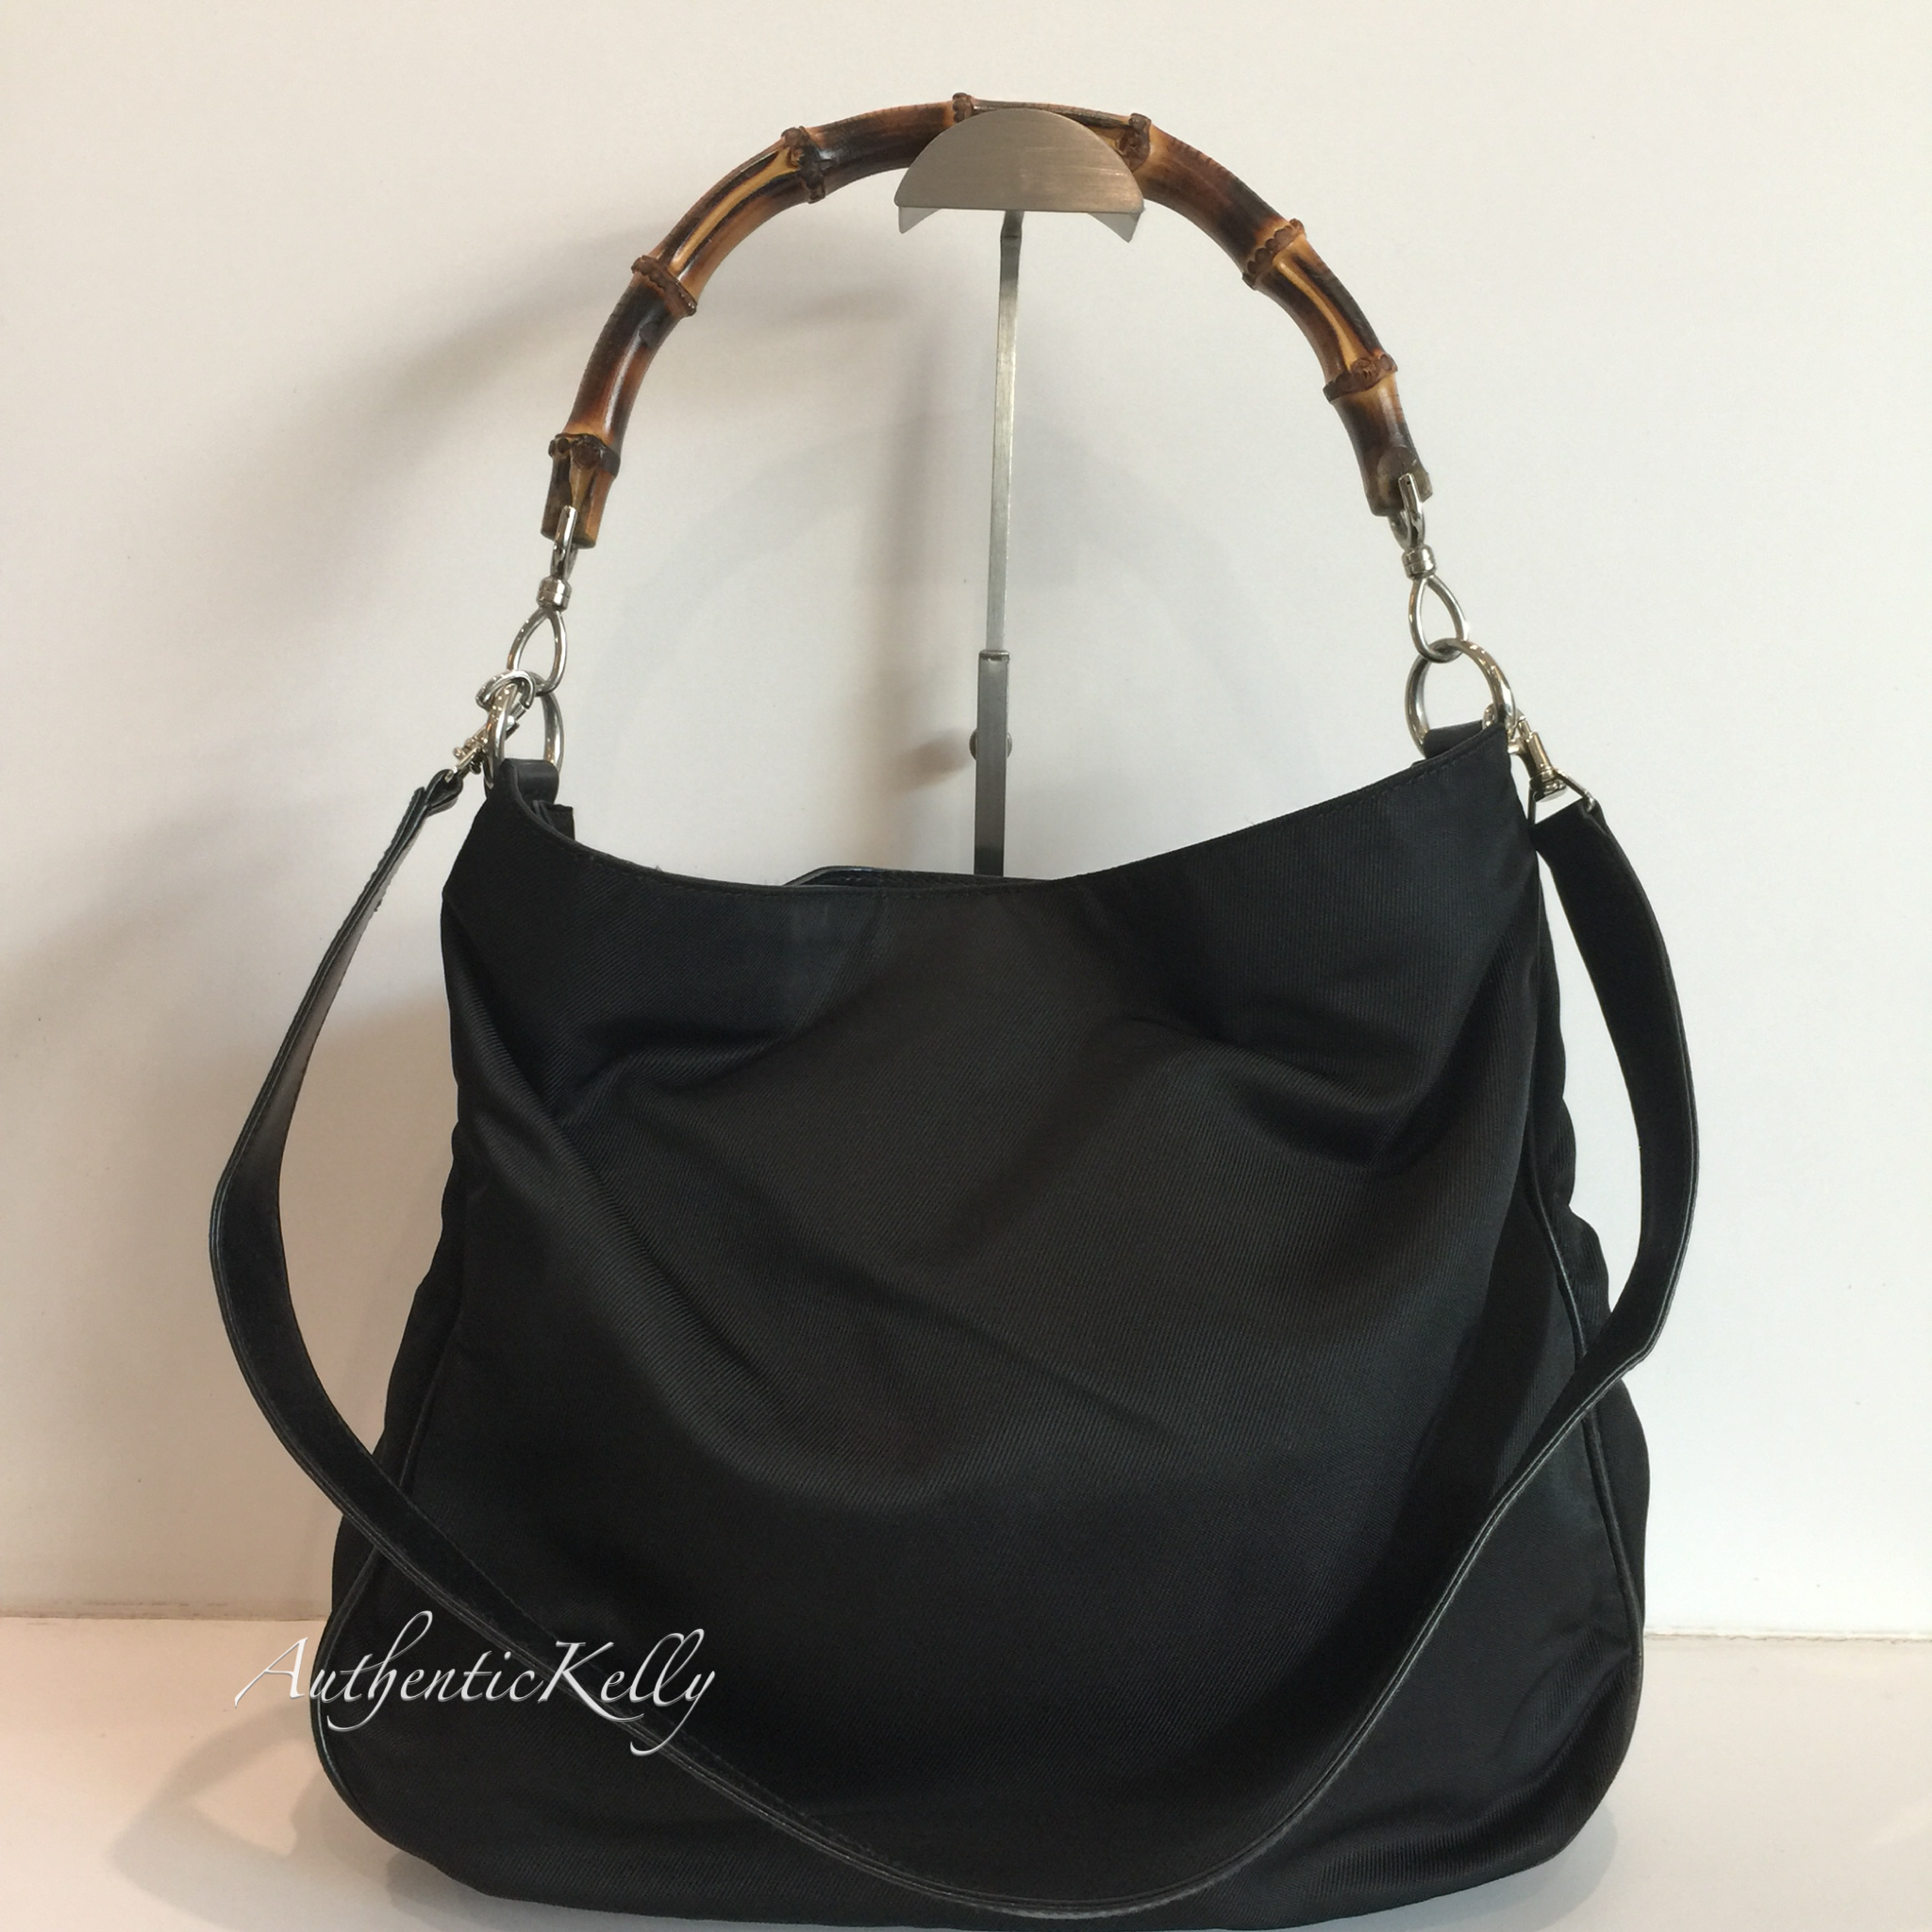 7626526bfc8b GUCCI Bamboo Canvas Leather Bag Black GM – AuthenticKelly